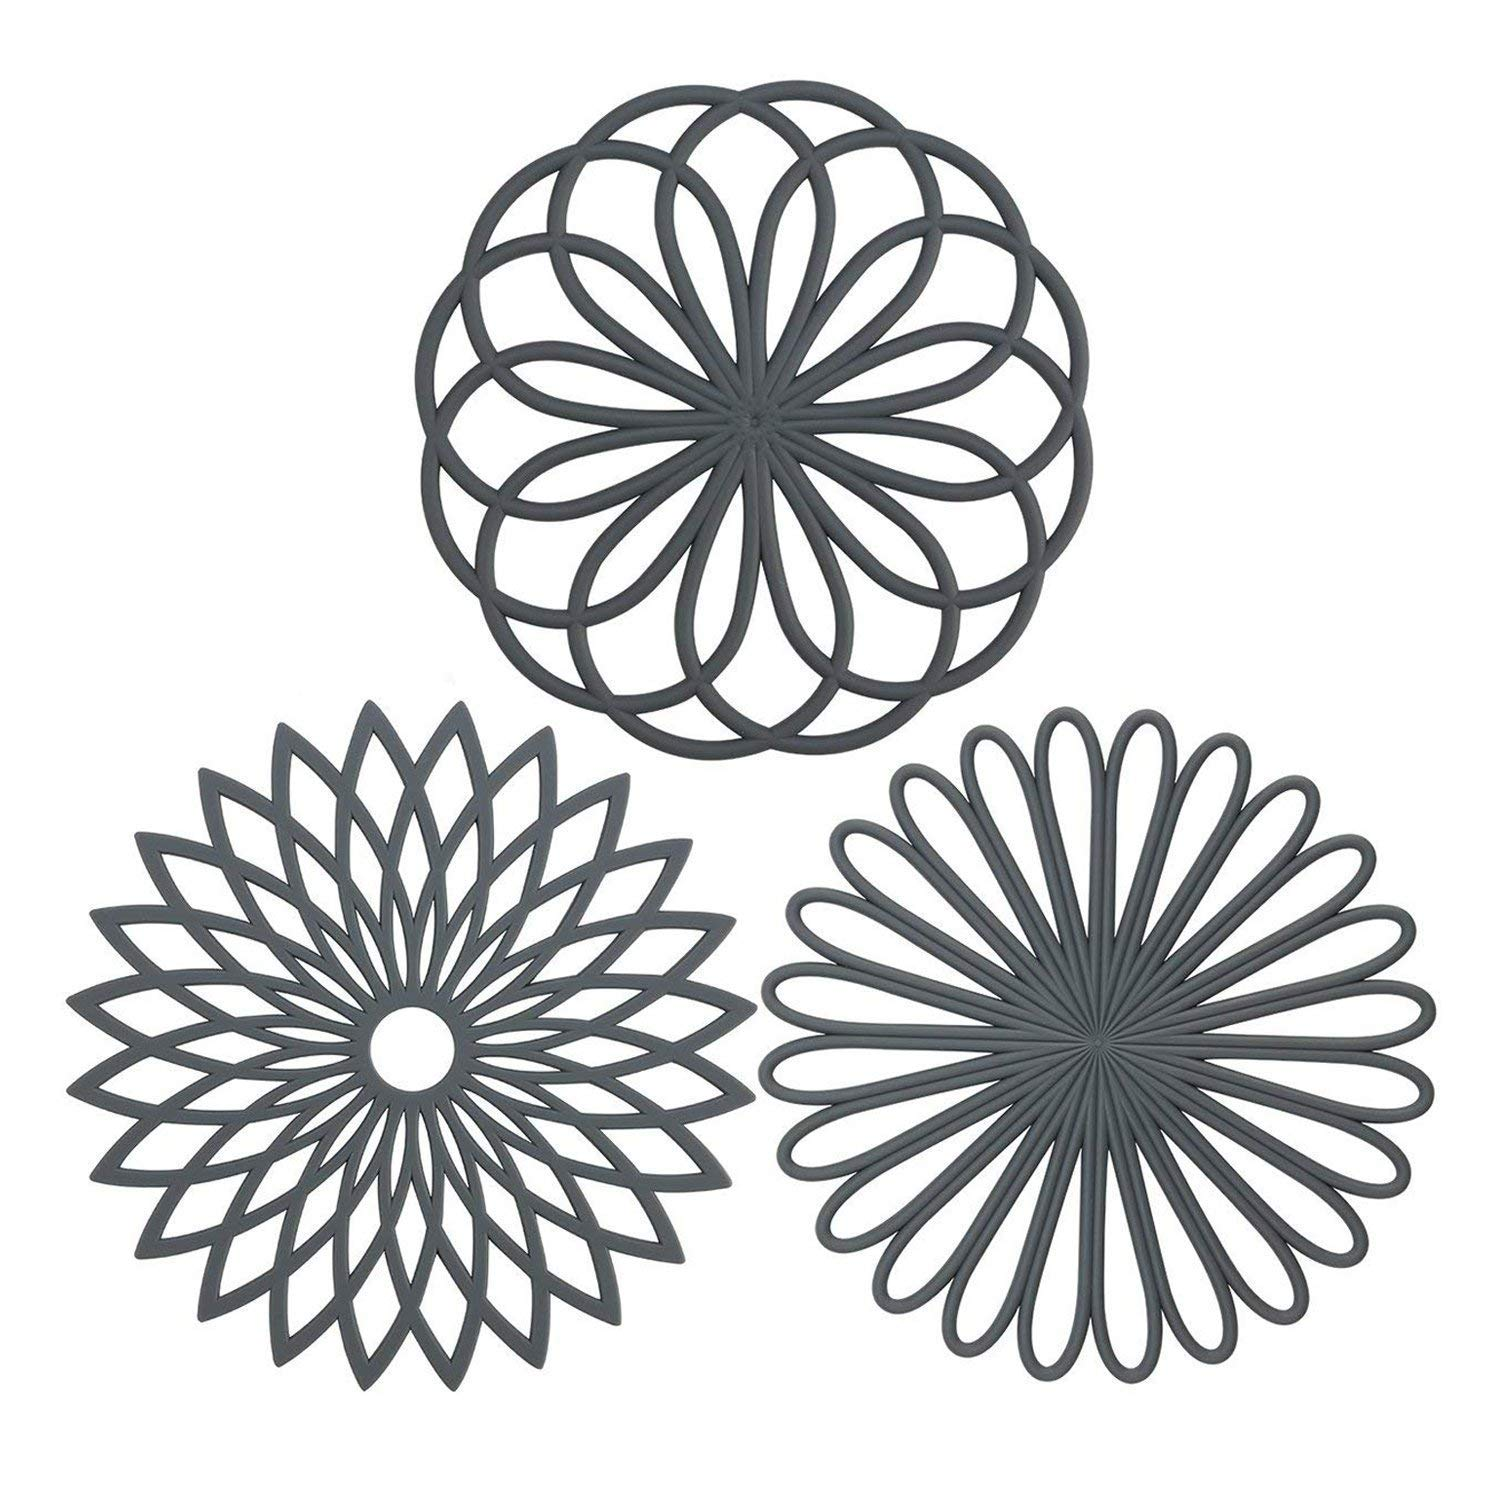 IPHOX 3 Set Silicone Multi-Use Intricately Carved Trivet Mat for kitchen mats, table mats, bowl mats, dish mats and pitcher coasters - Insulated Flexible Durable Non Slip Coasters Hot Pads (Gray)